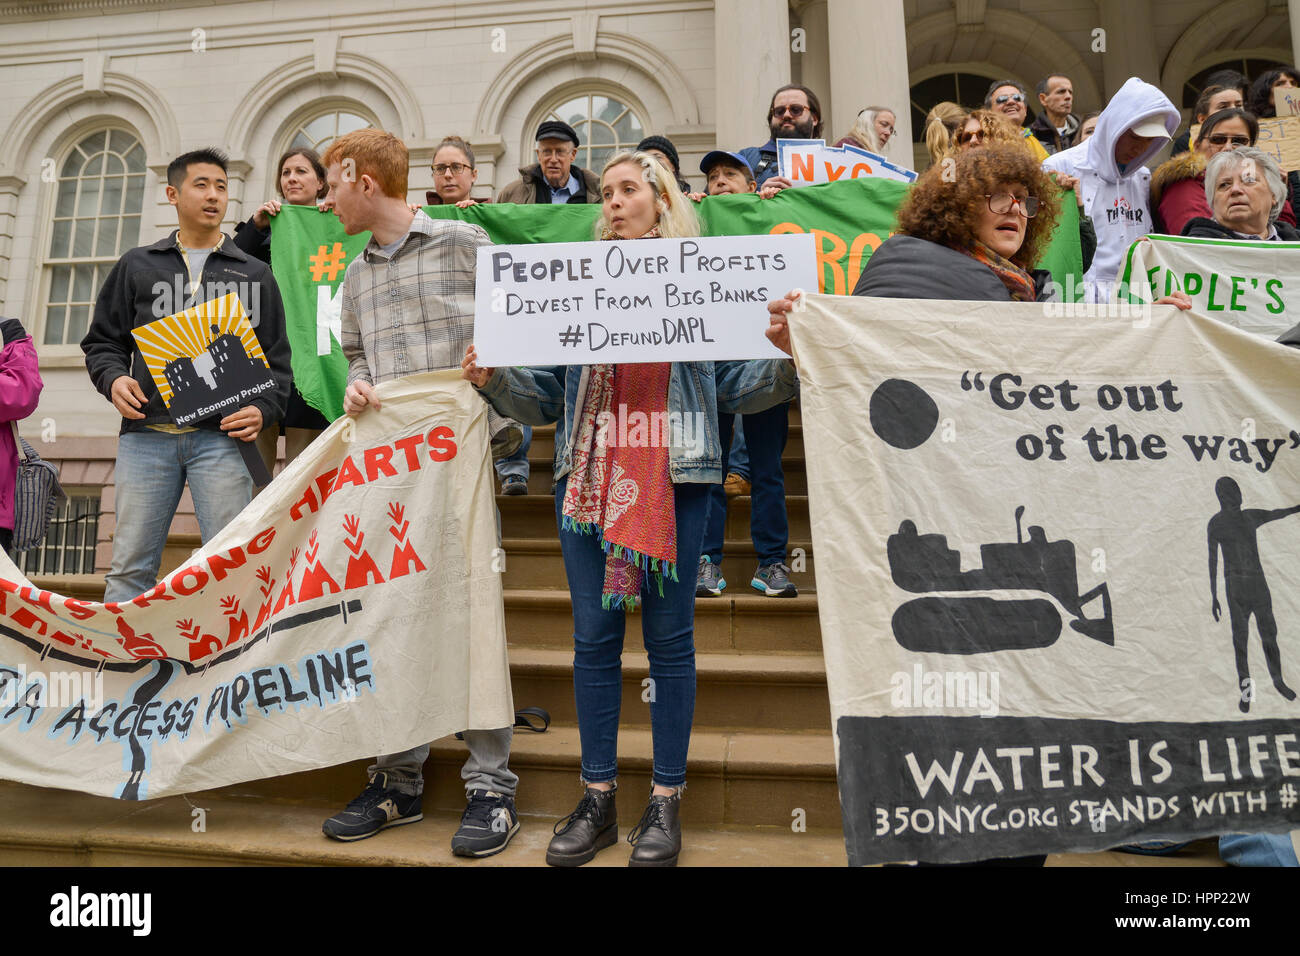 New York, United States. 23rd Feb, 2017. Demonstrators hold signs while rallying on the steps of City Hall. Activists - Stock Image